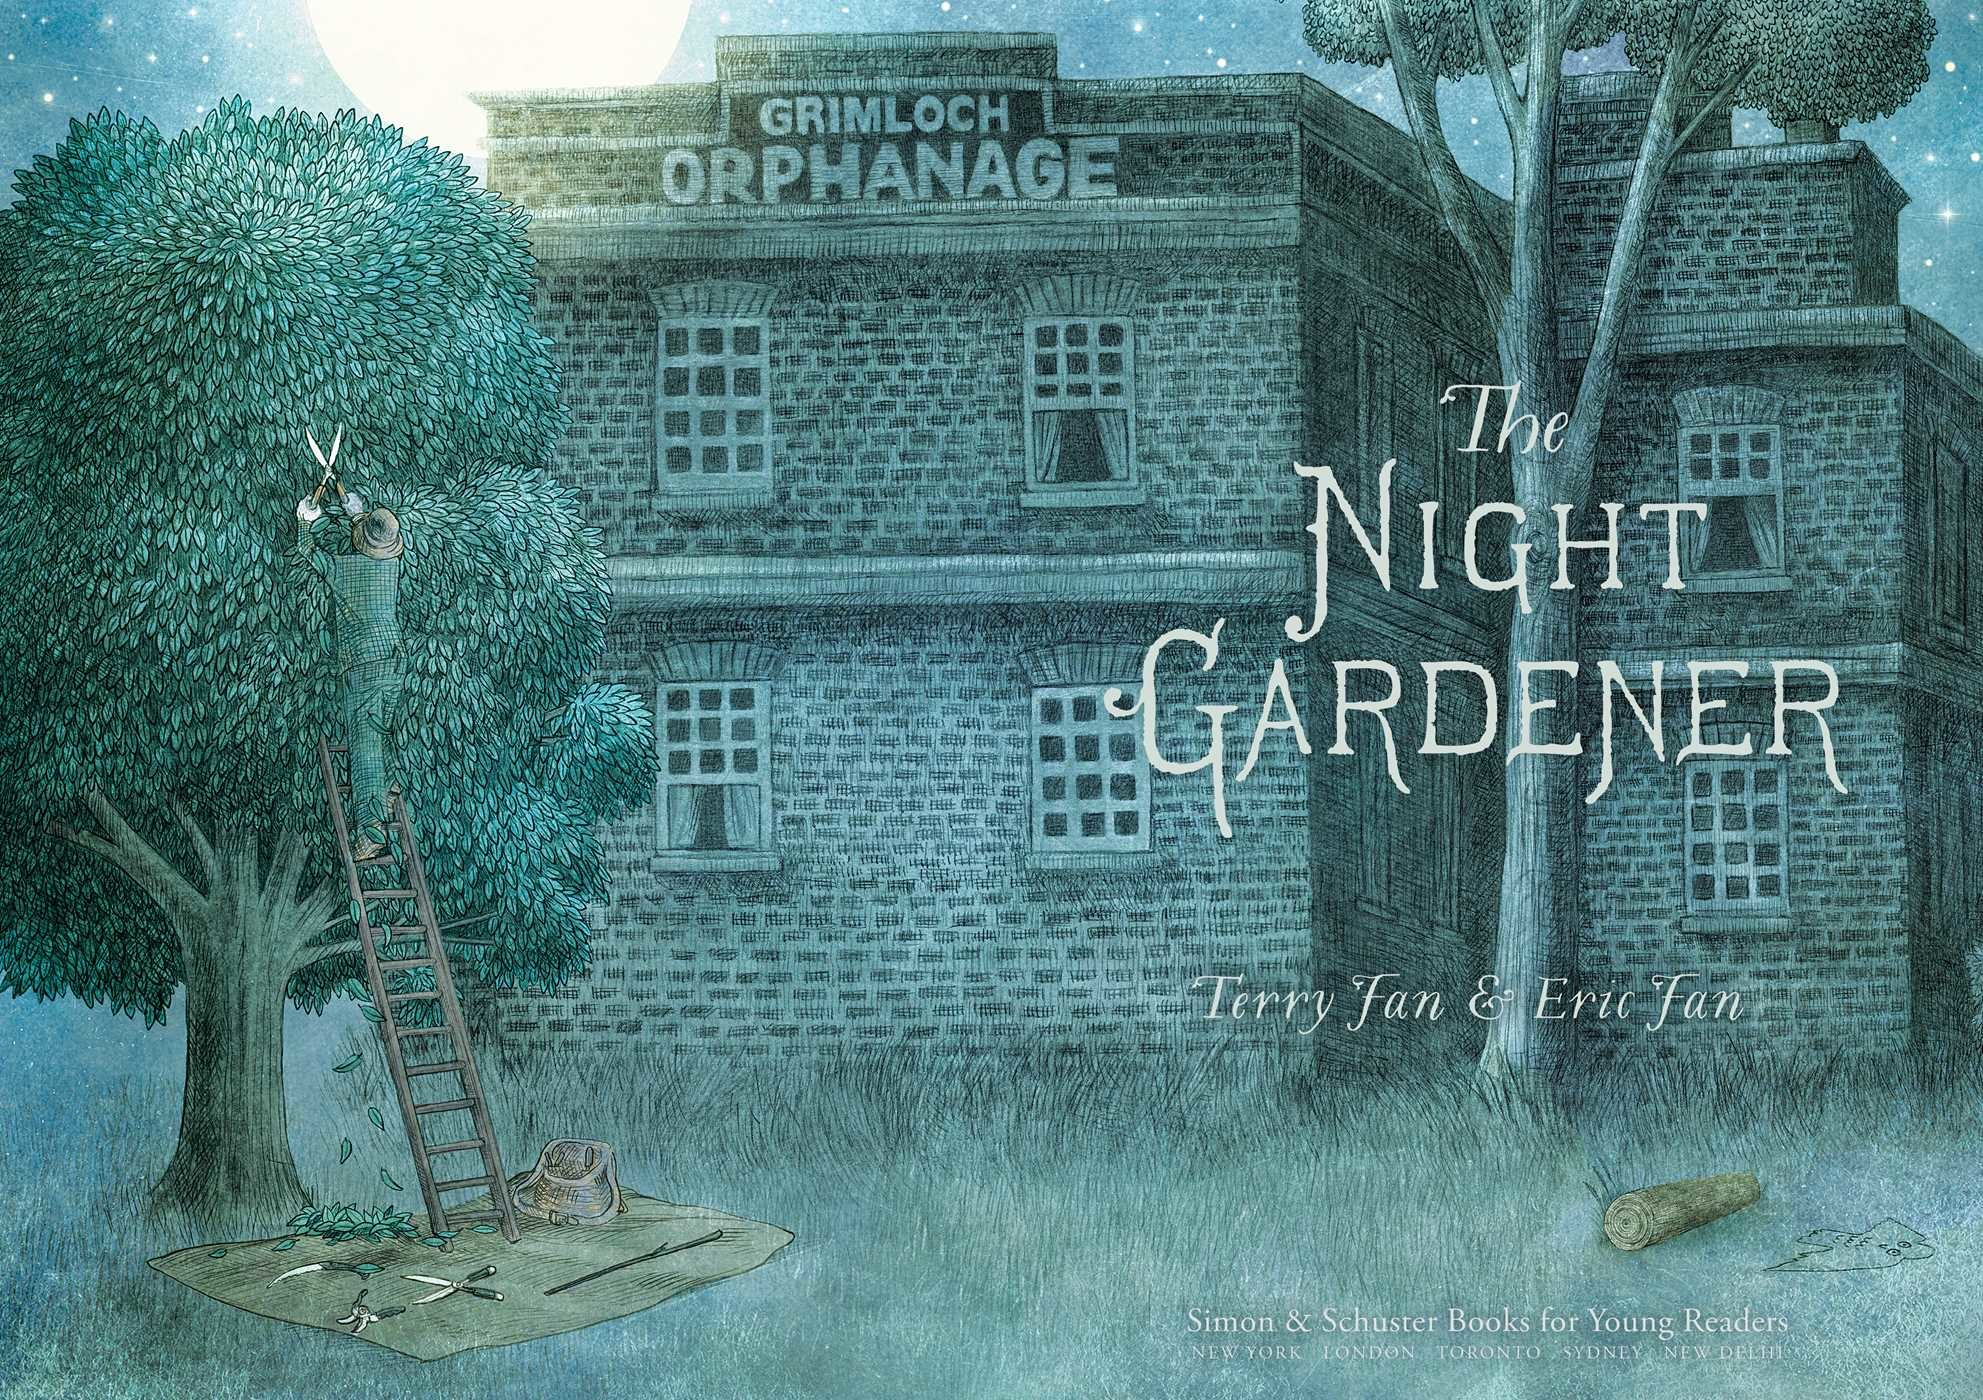 The night gardener 9781481439787.in02